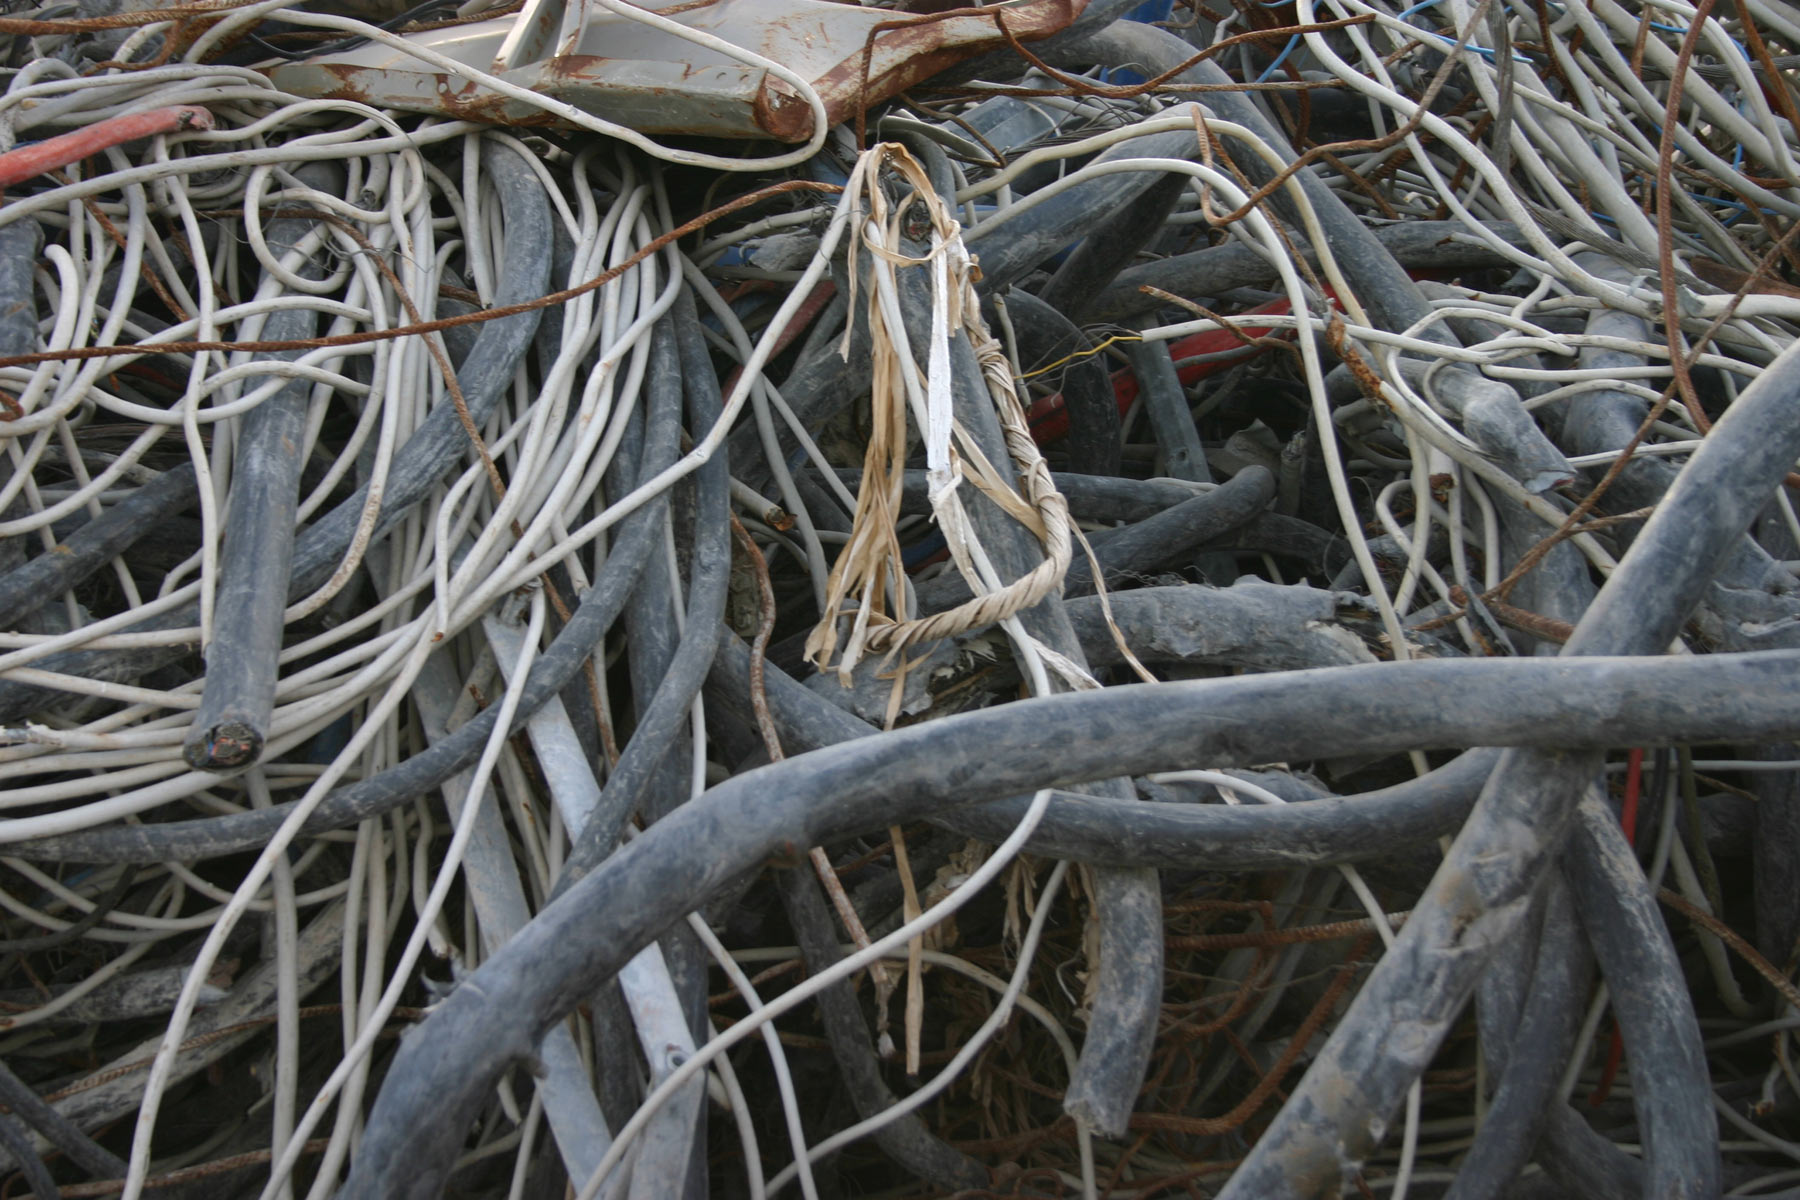 Pile of cables photo